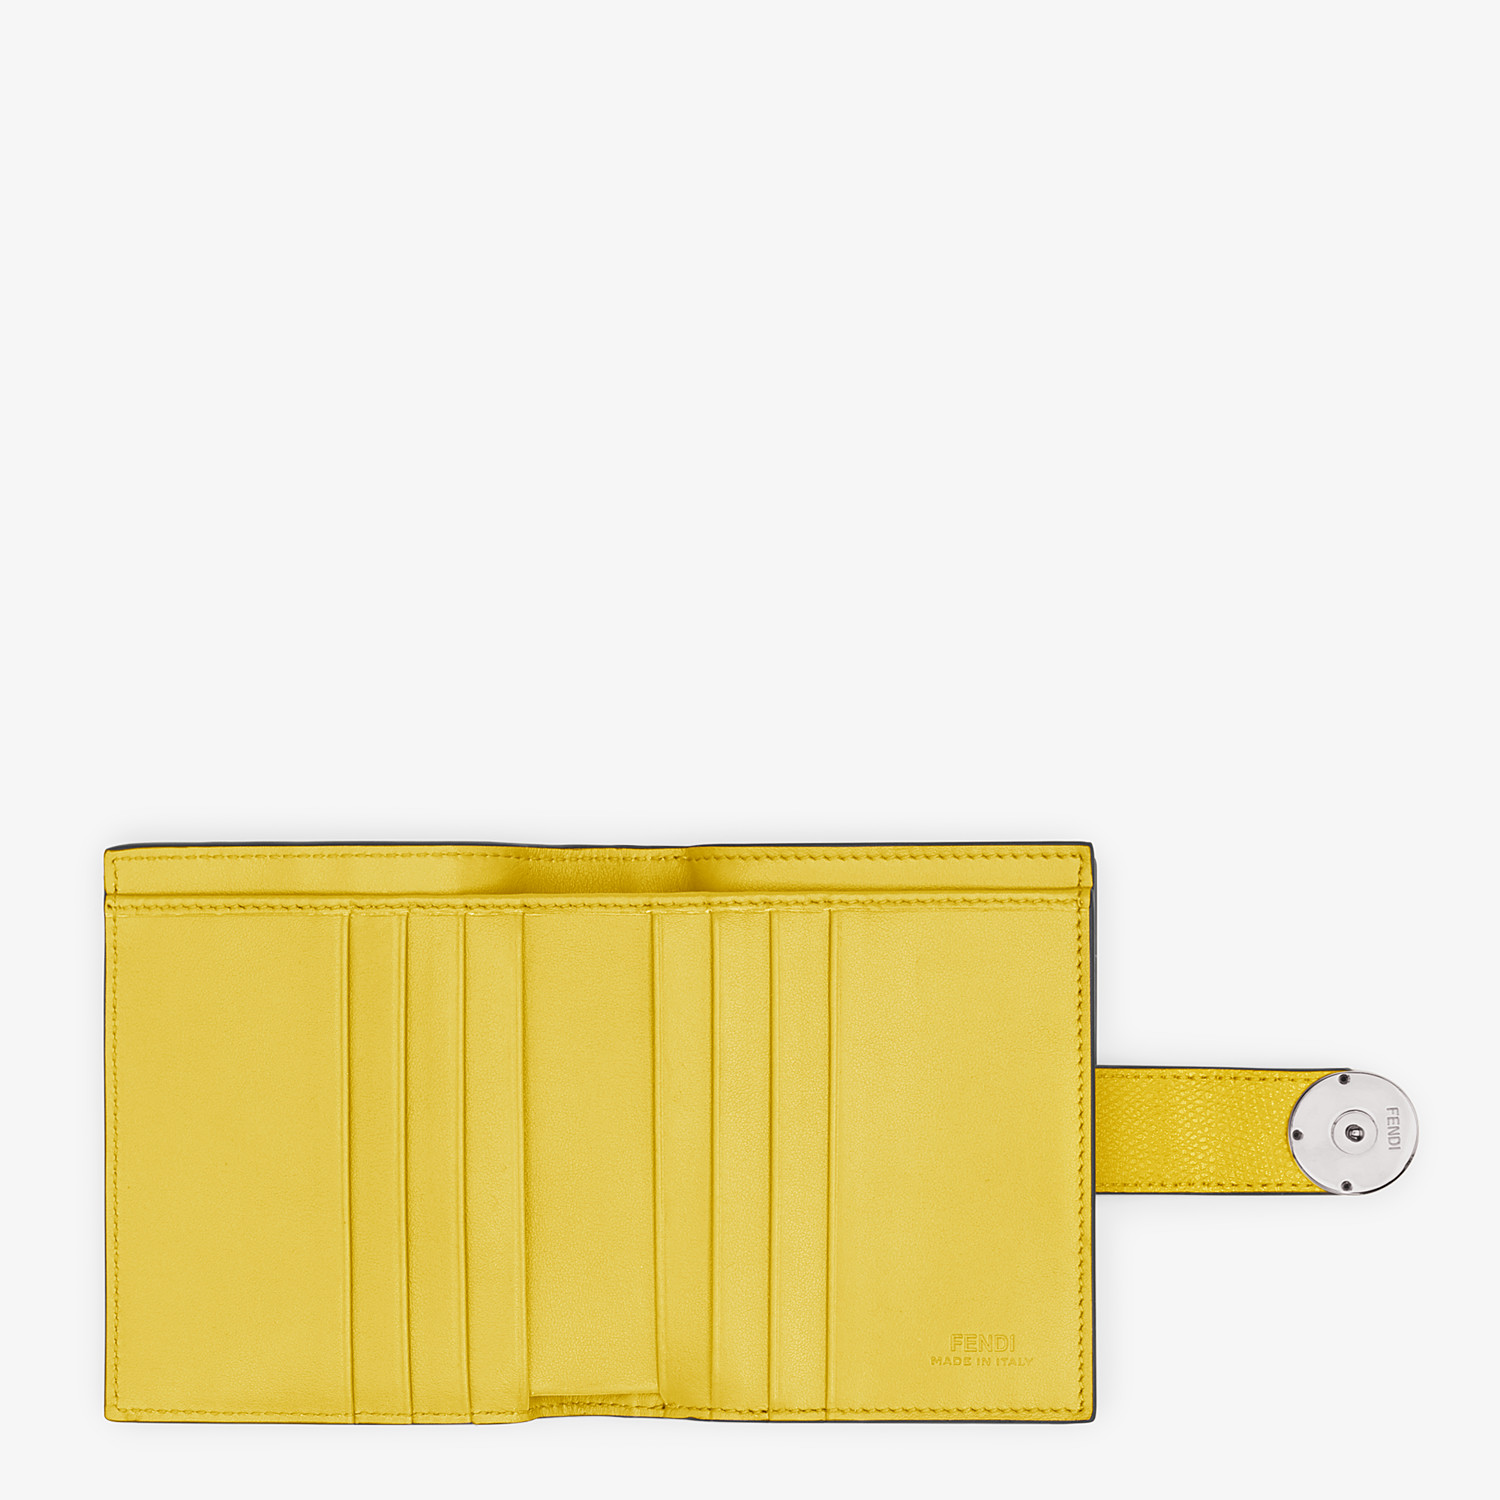 FENDI BIFOLD - Compact, yellow leather wallet - view 5 detail